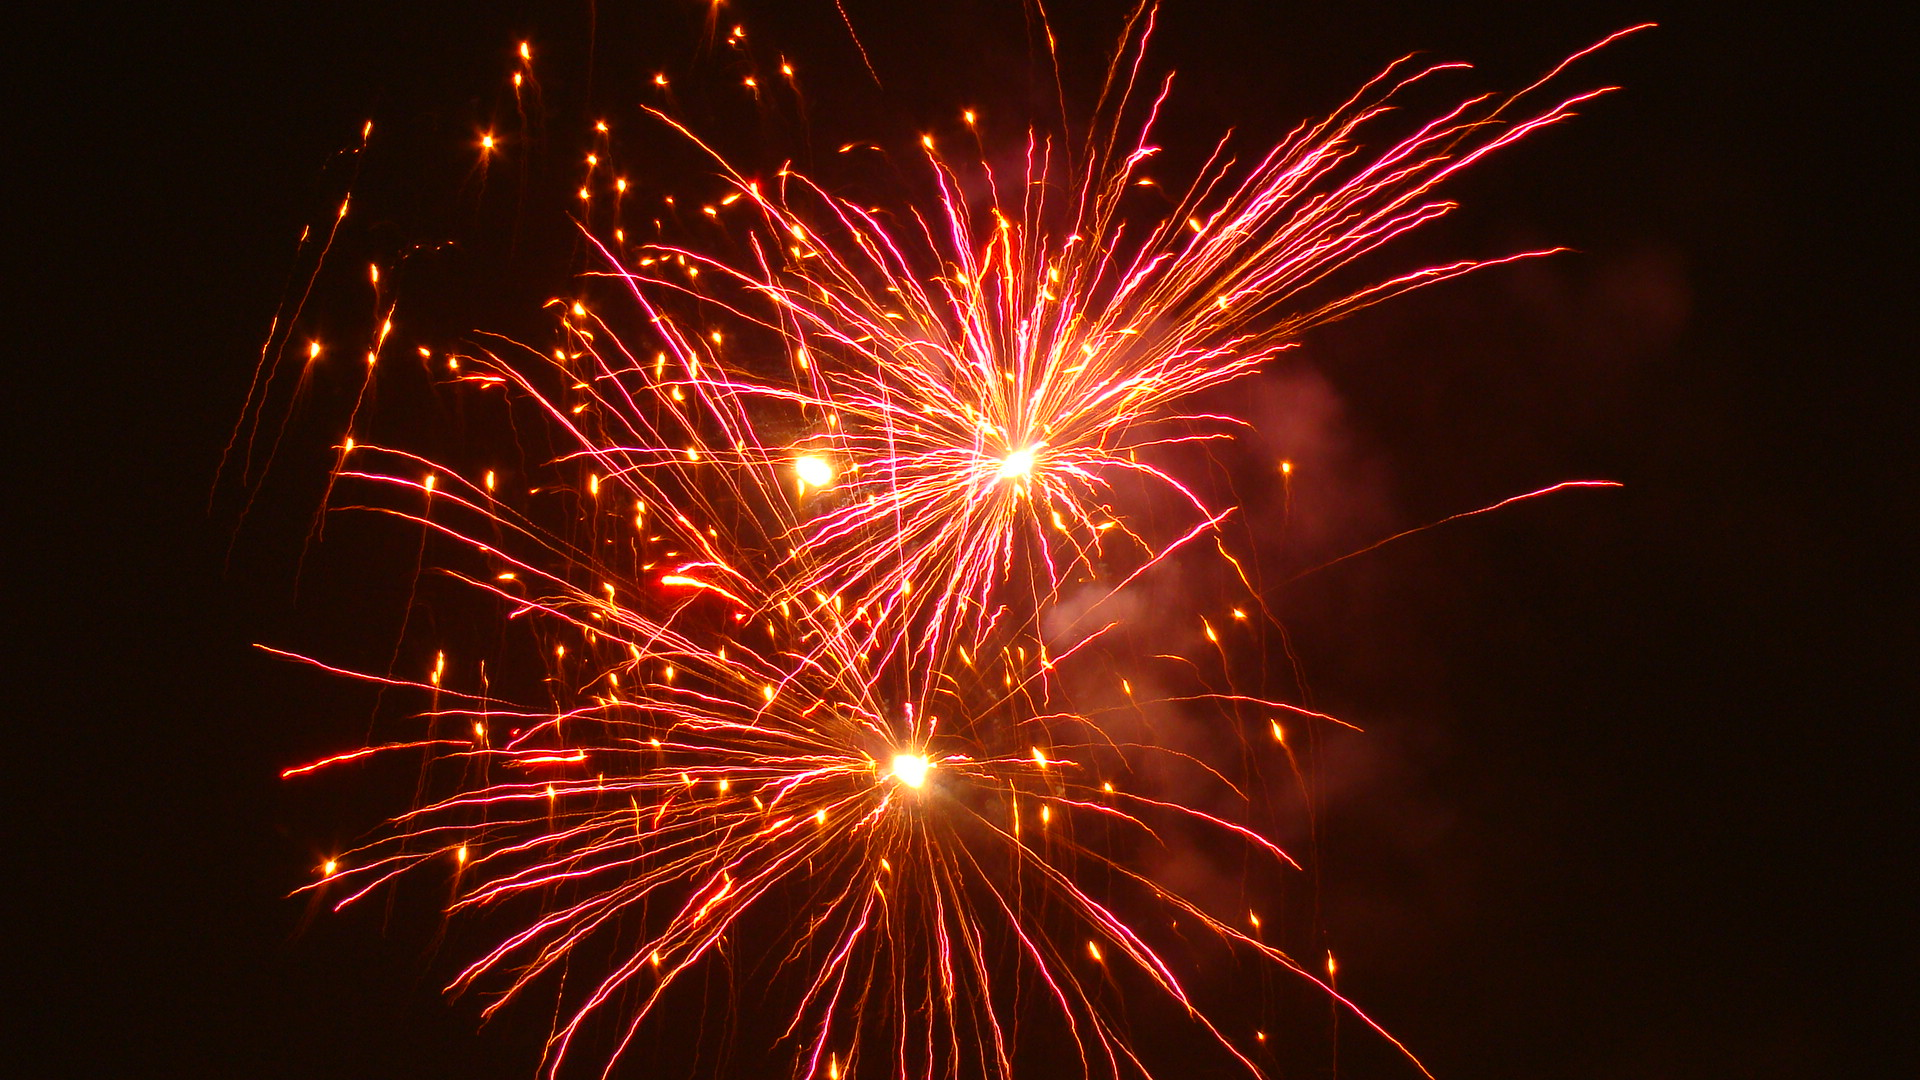 File:Fire Crackers Display (DSC01947).JPG - Wikimedia Commons